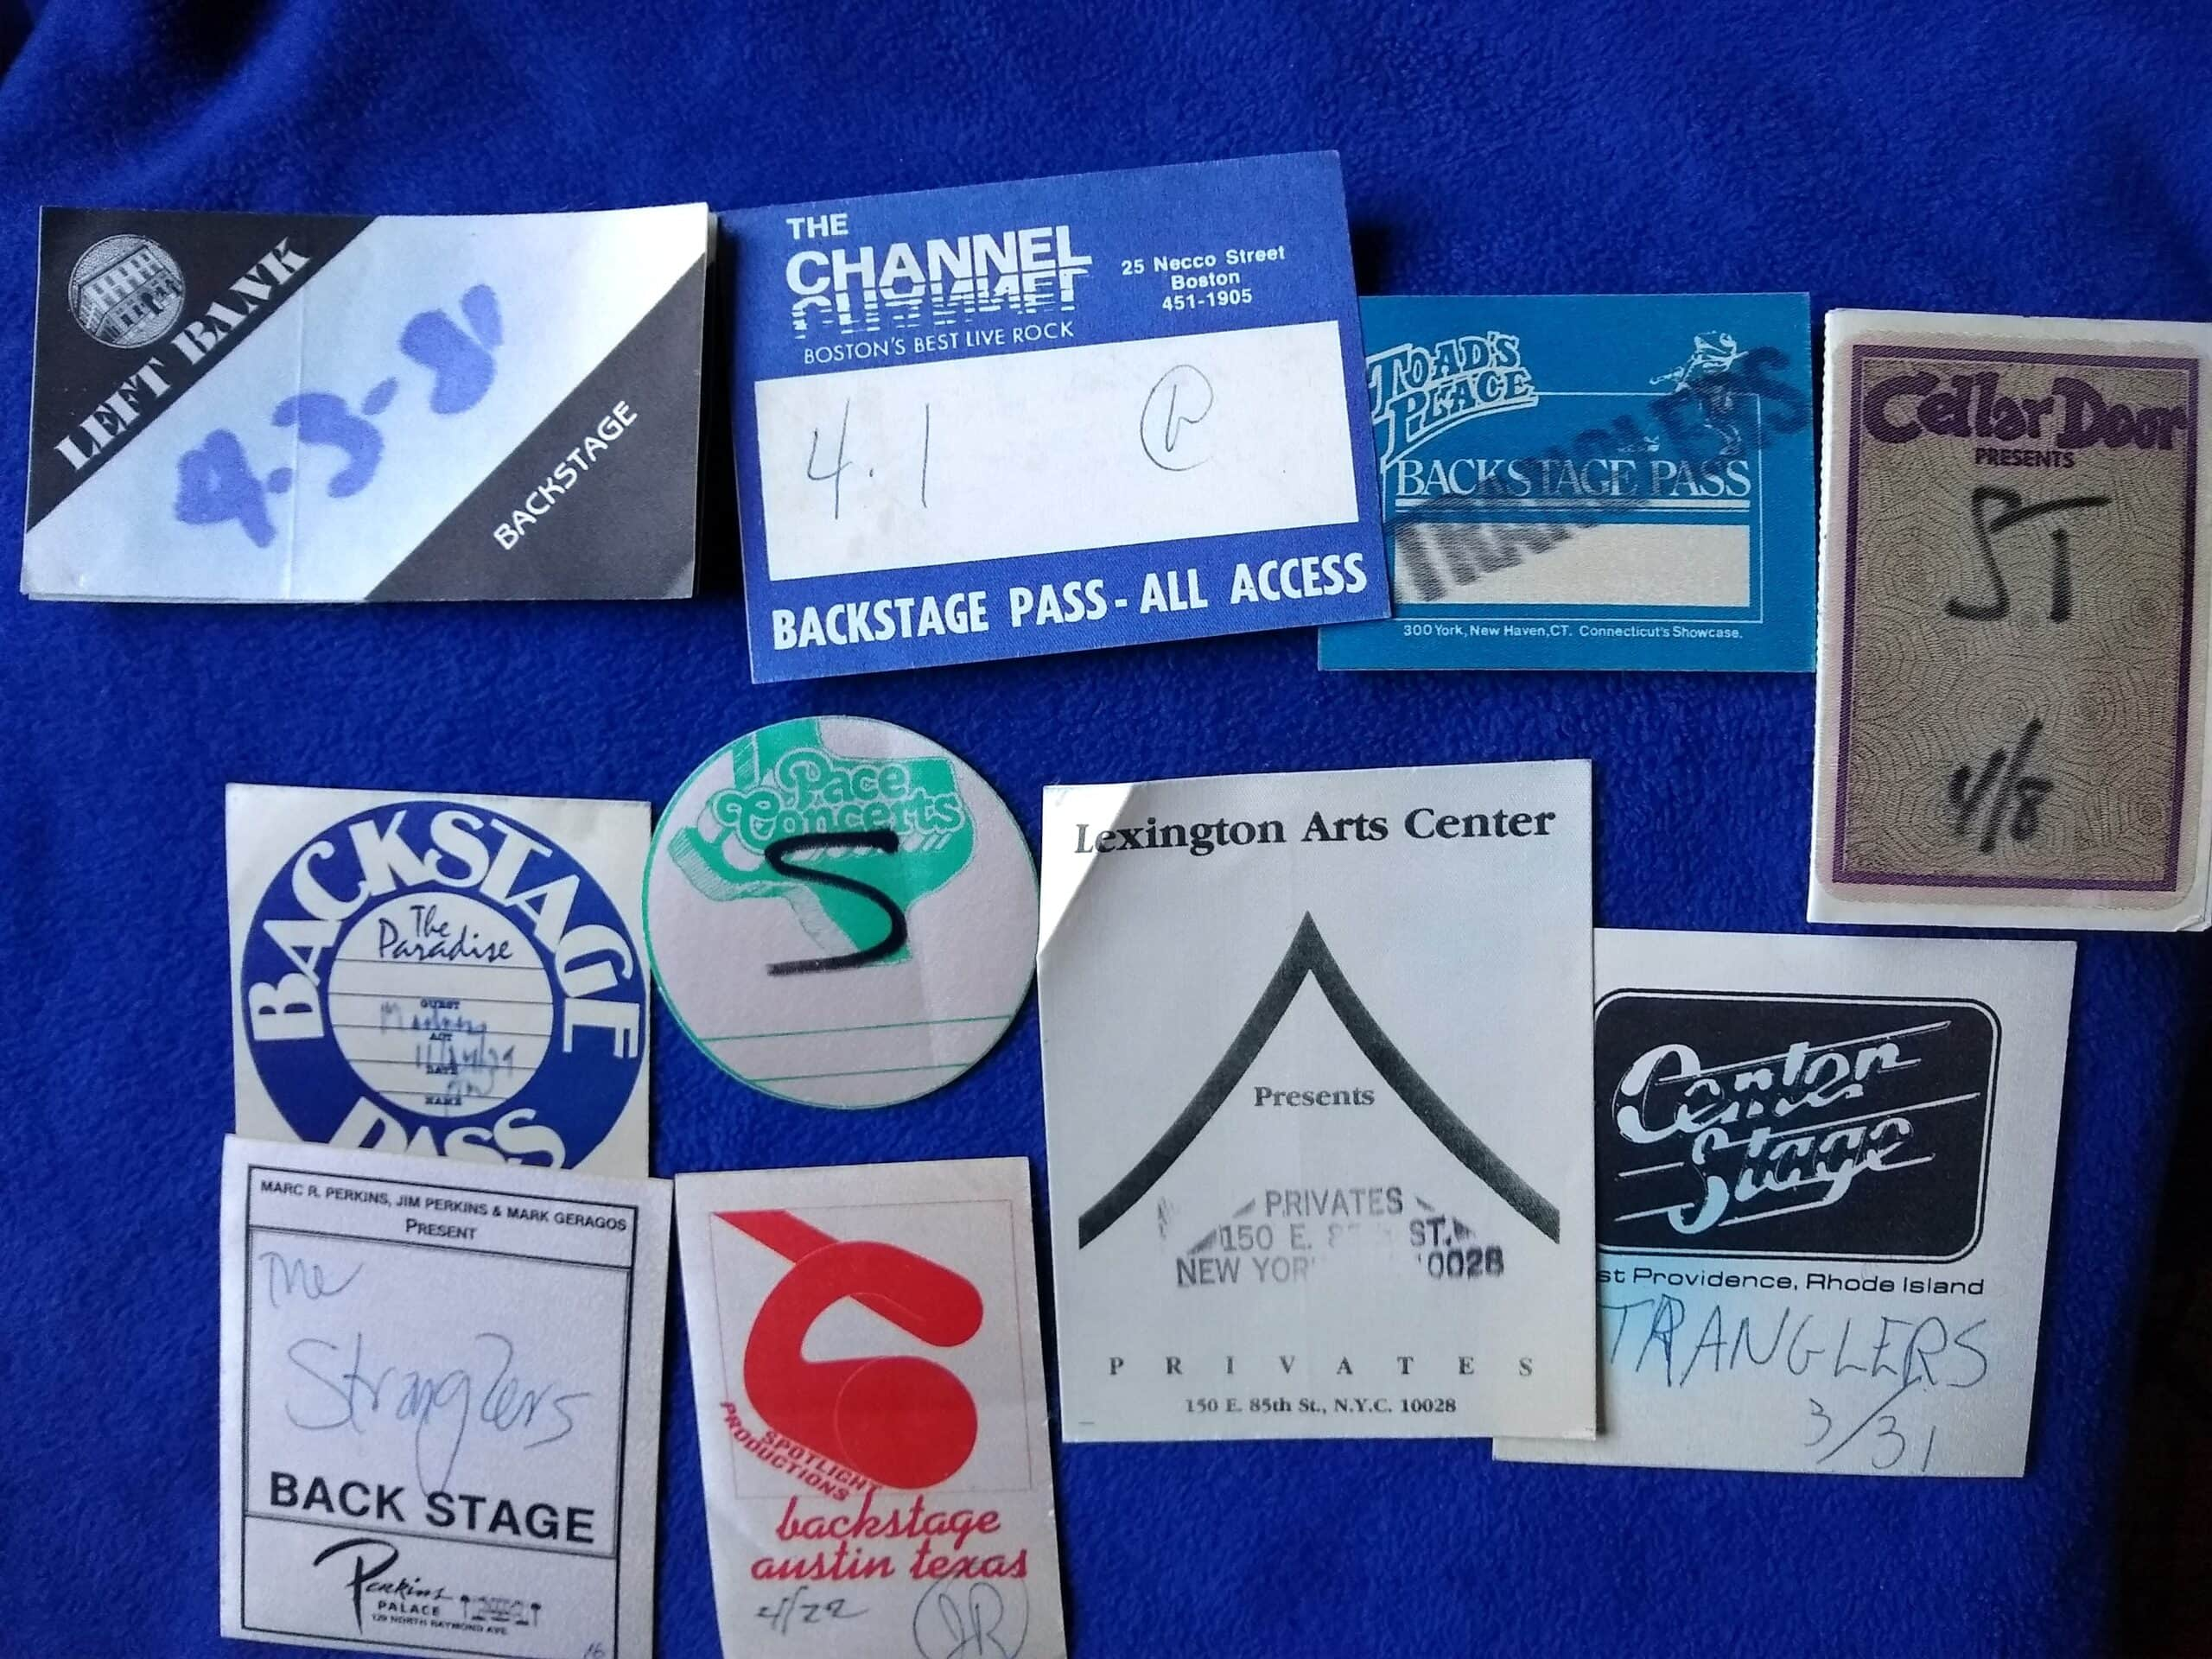 The Stranglers' backstage passes.